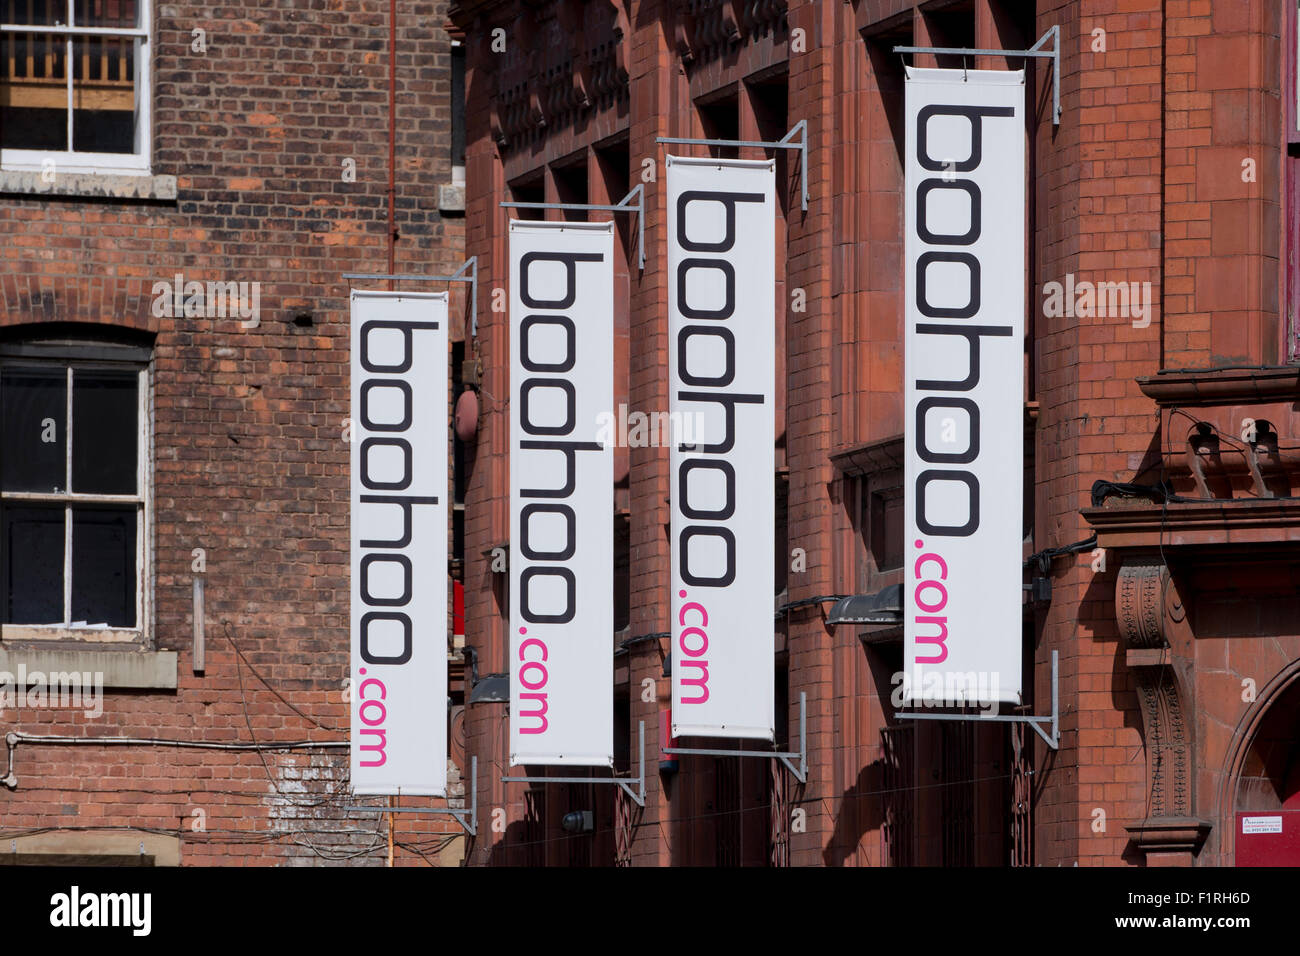 The offices of Boohoo.com online fashion retailer located on Dale Street in the Piccadilly area of Manchester - Stock Image